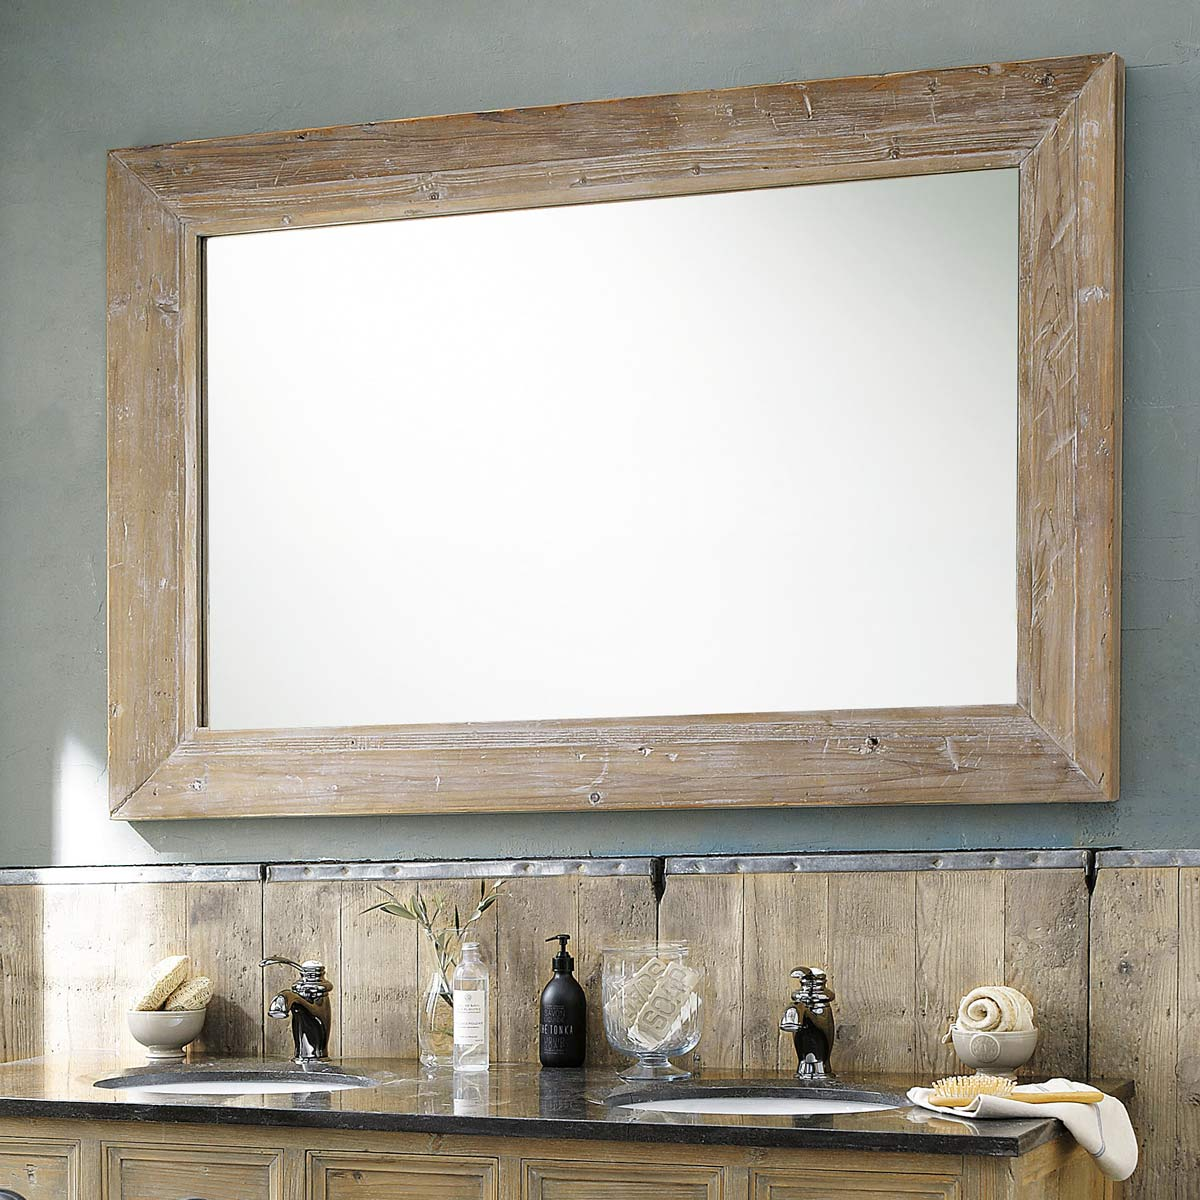 Grand miroir en bois naturel miroir d coration for Grand miroir